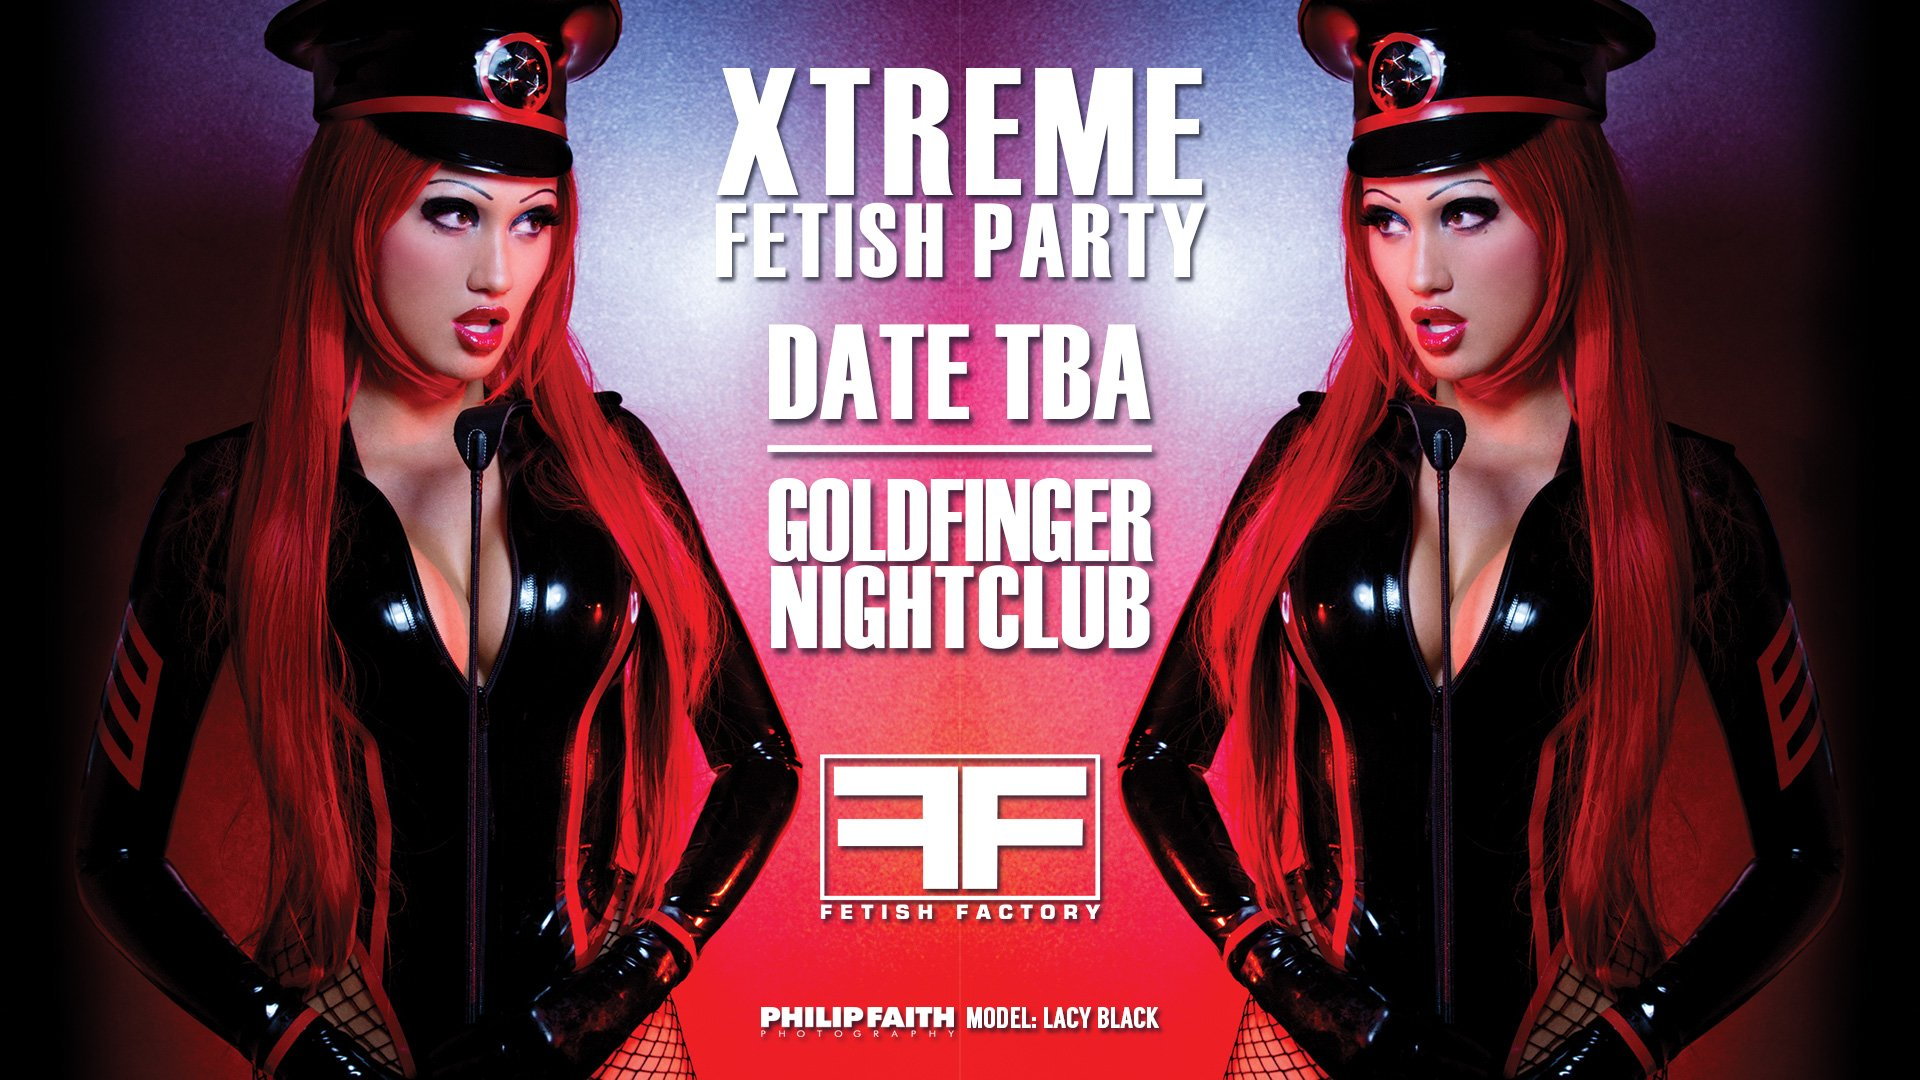 Xtremem fetish party (XFP) postponed until further notice due to COVID-19